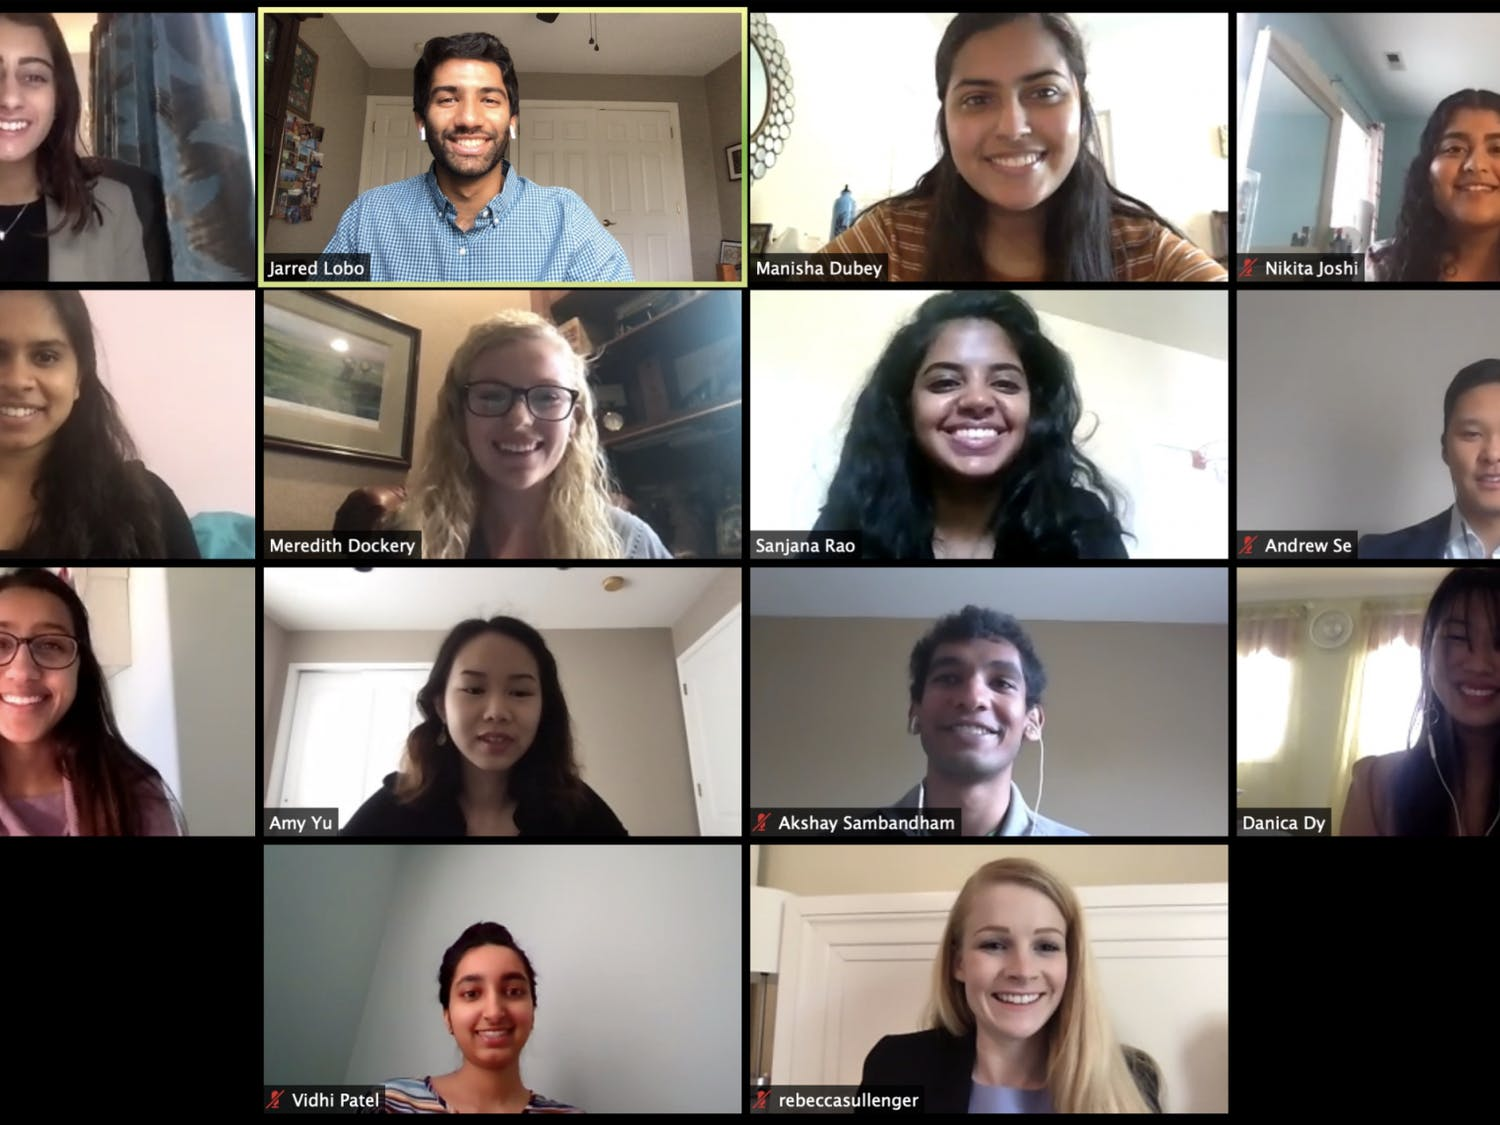 """UNC's chapter of the American Mock World Health Organization held its conference over Zoom on Saturday, April 18, 2020. """"People were definitely very receptive and we actually had more international registrants for this virtual platform than we did for our actual conference,"""" Anisha Khanna, UNC AMWHO internal co-director and chapter director for AMWHO Inc., said. Photo courtesy of Meredith Dockery."""